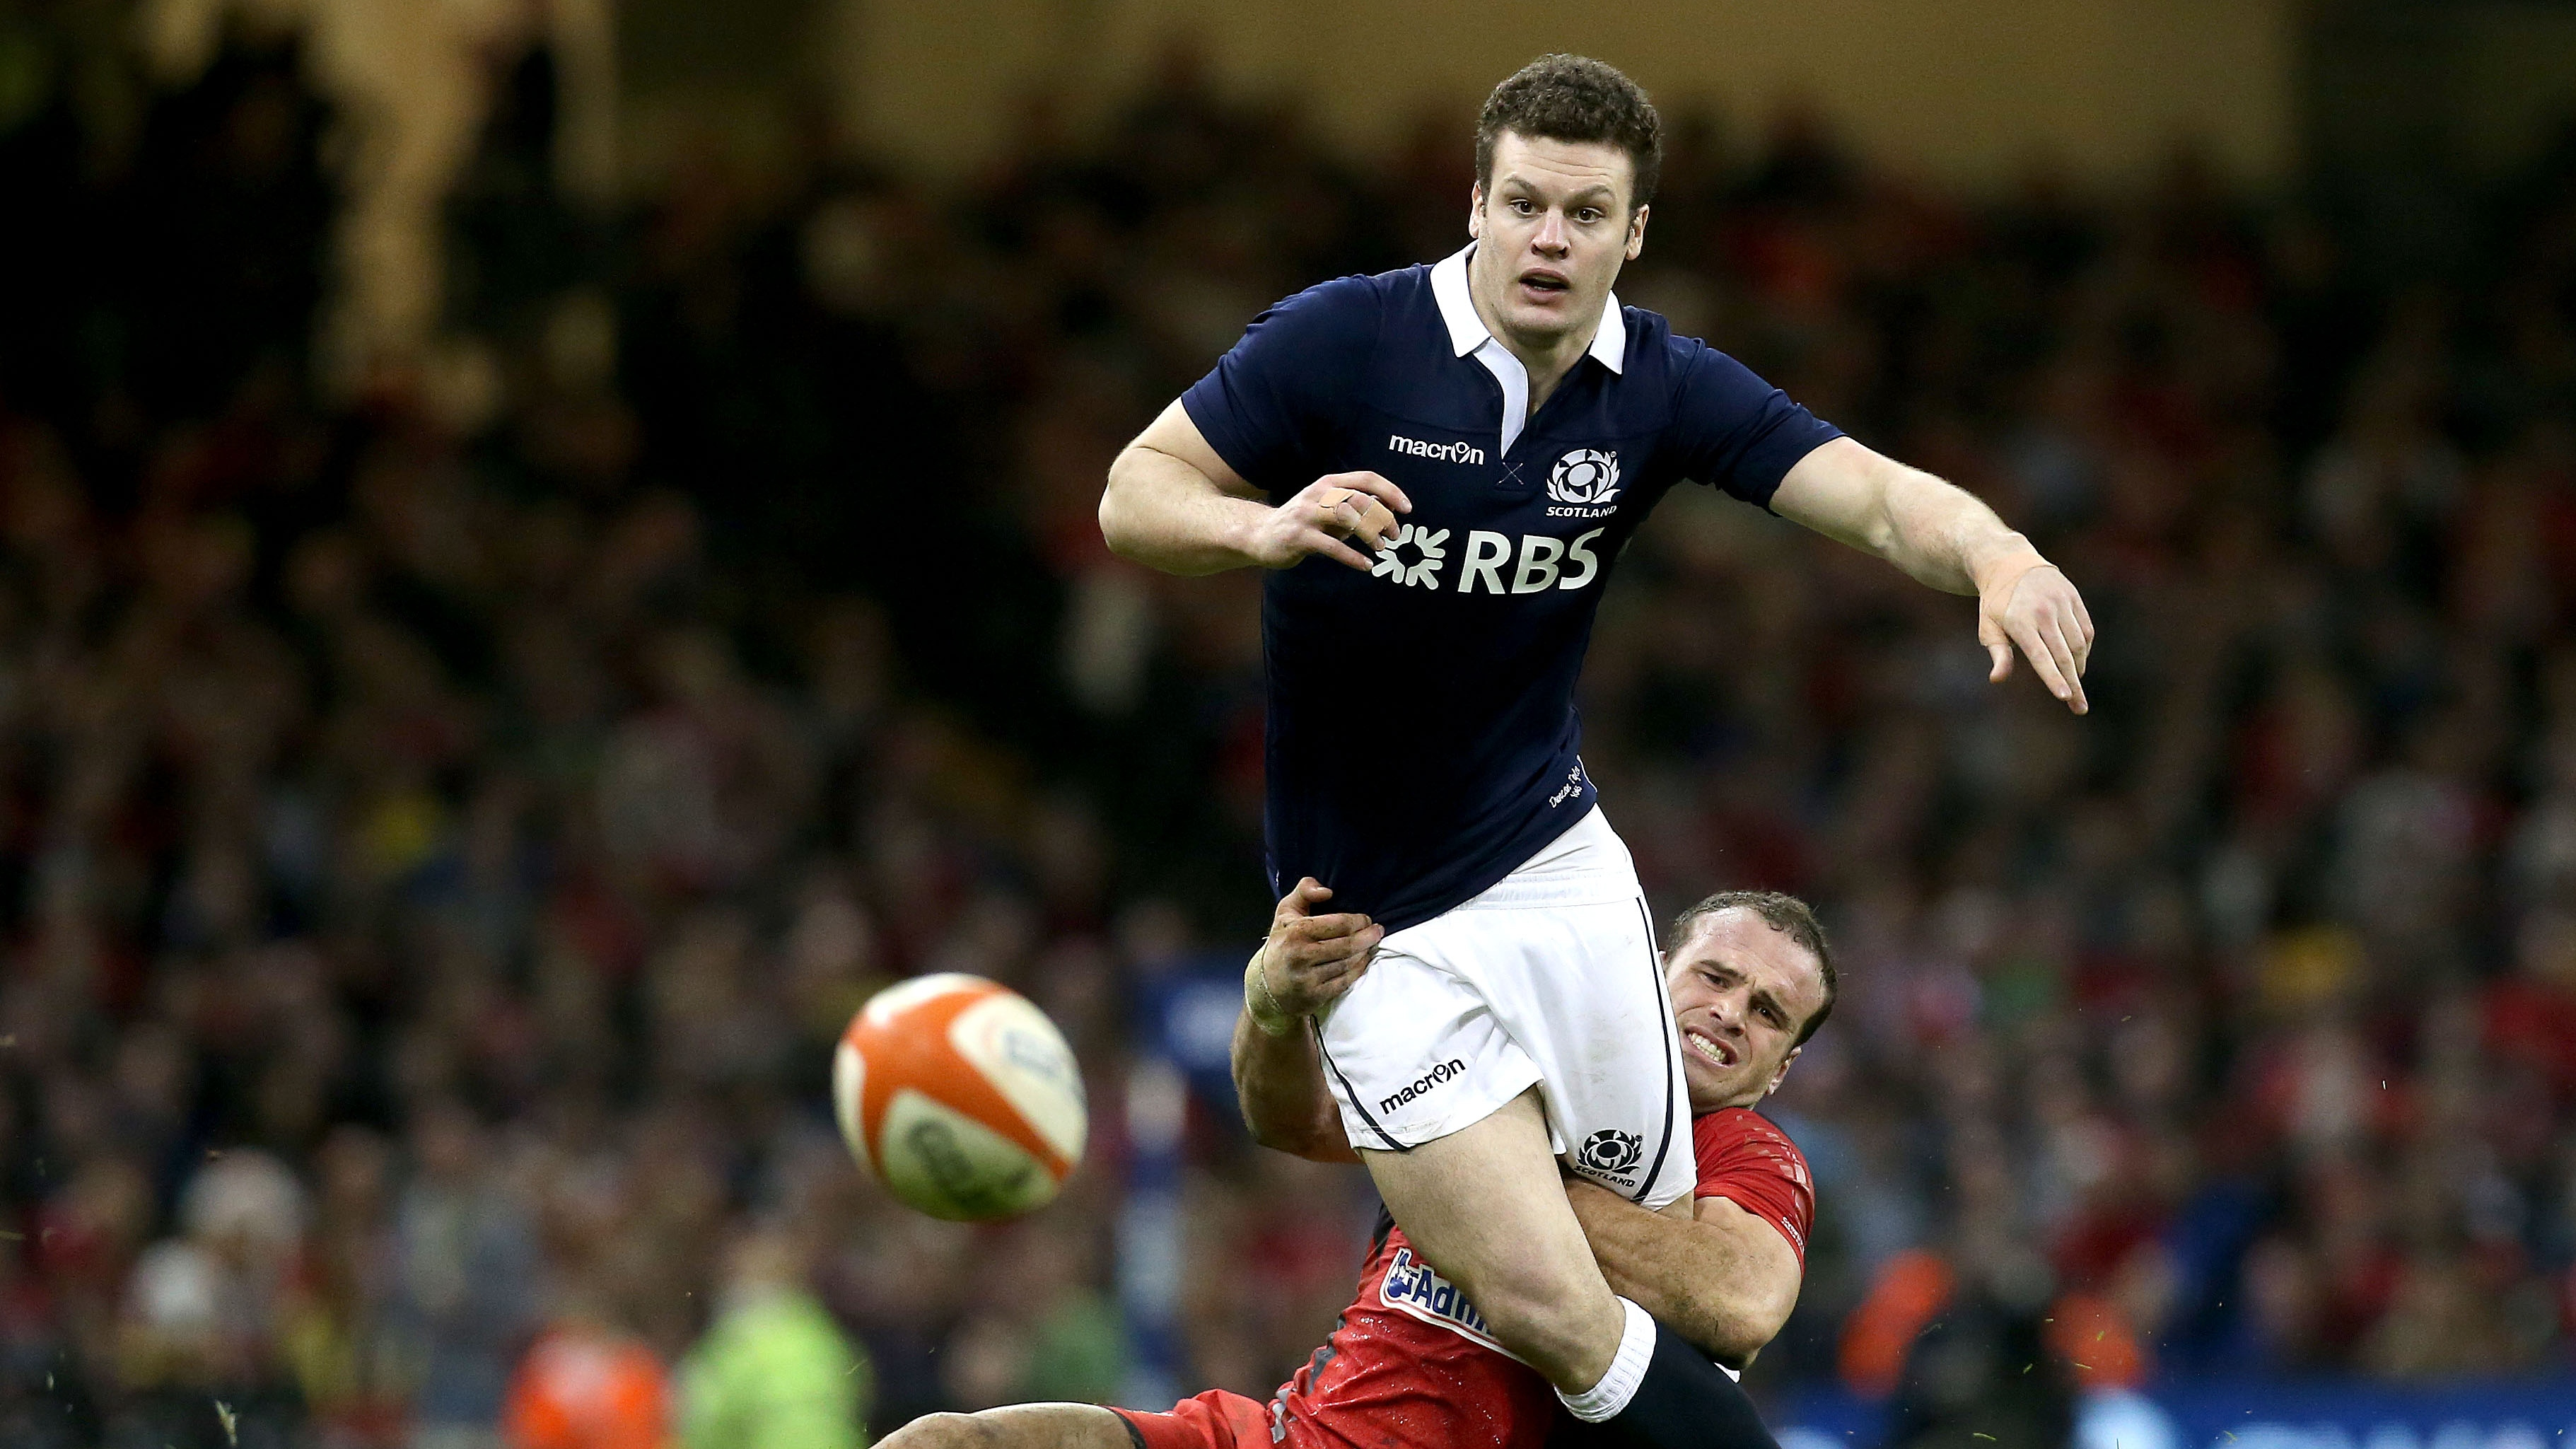 Taylor determined to keep Scotland spot in 2015